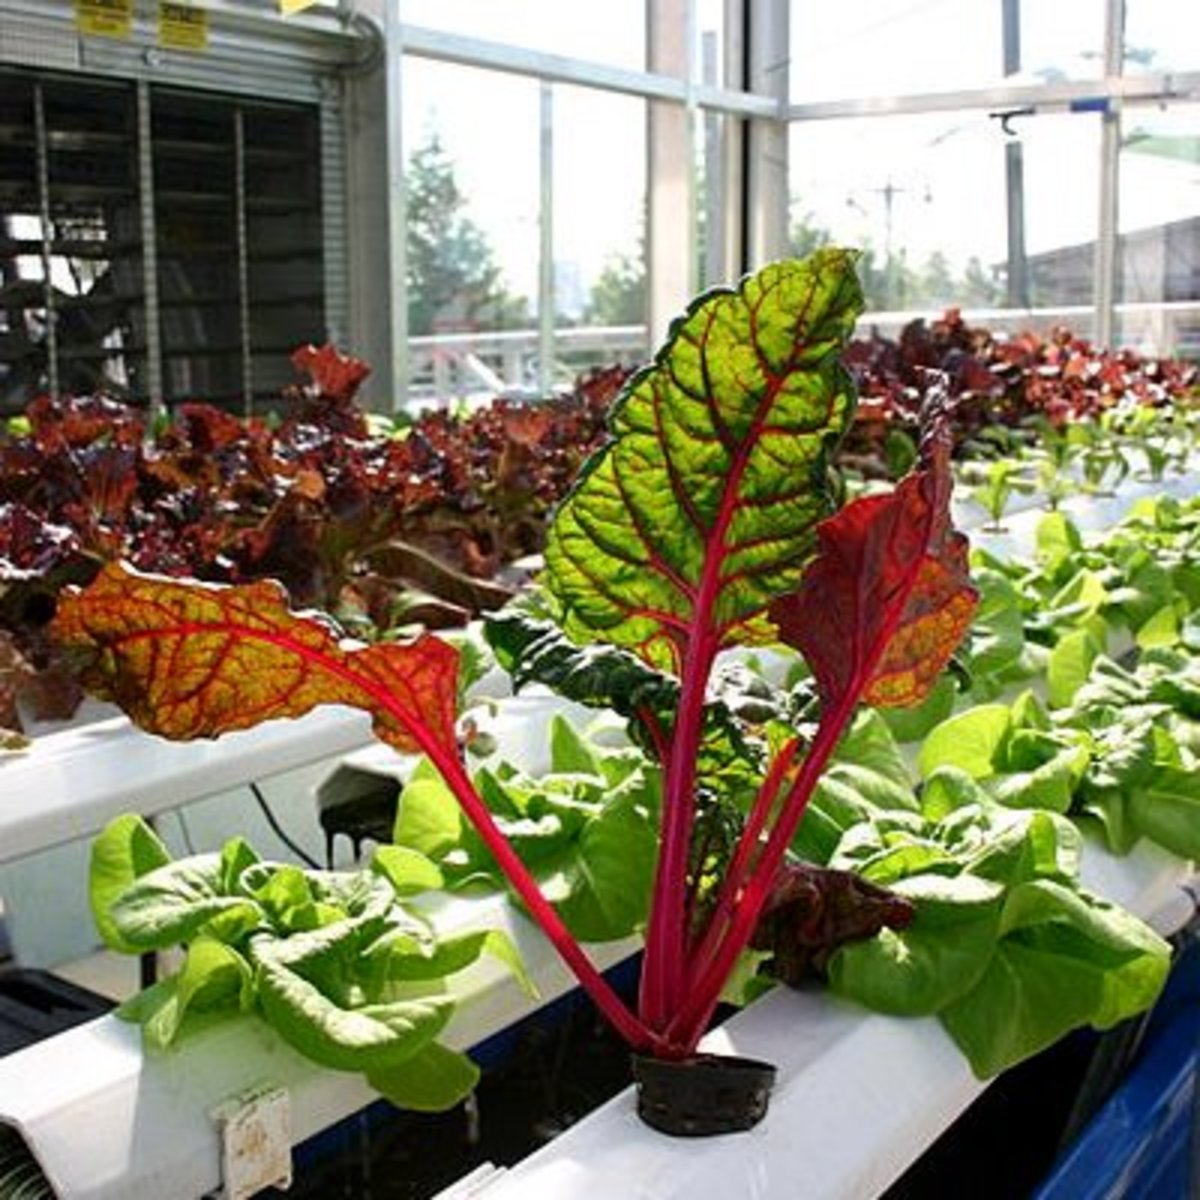 Chard and lettuce grown hydroponically. Note how big and healthy they are.